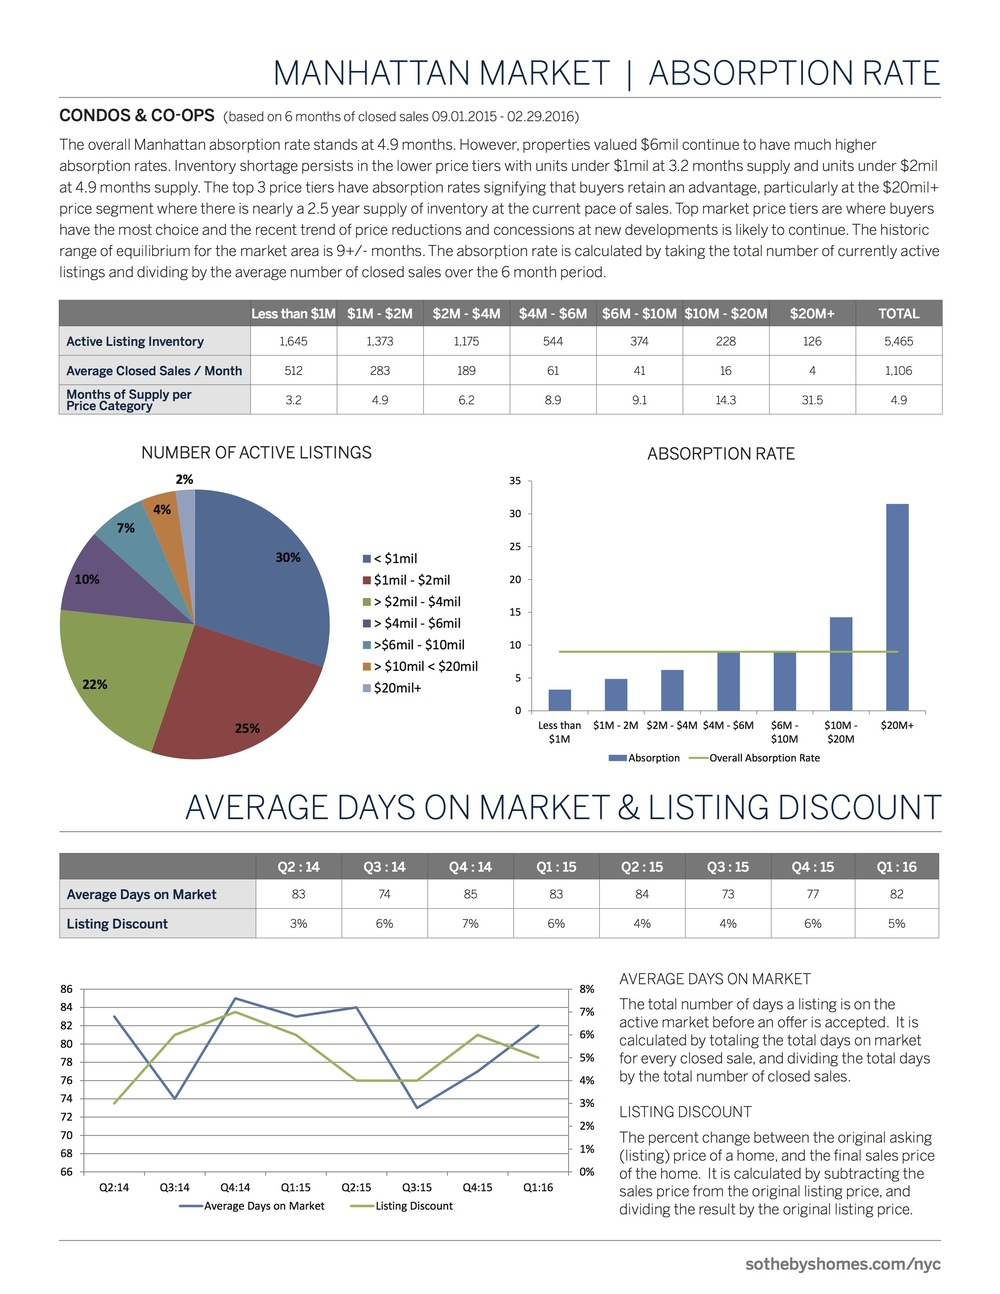 SothebysInternationalRealty_Manhattan_MarketReport_2016_Q1_3.jpg